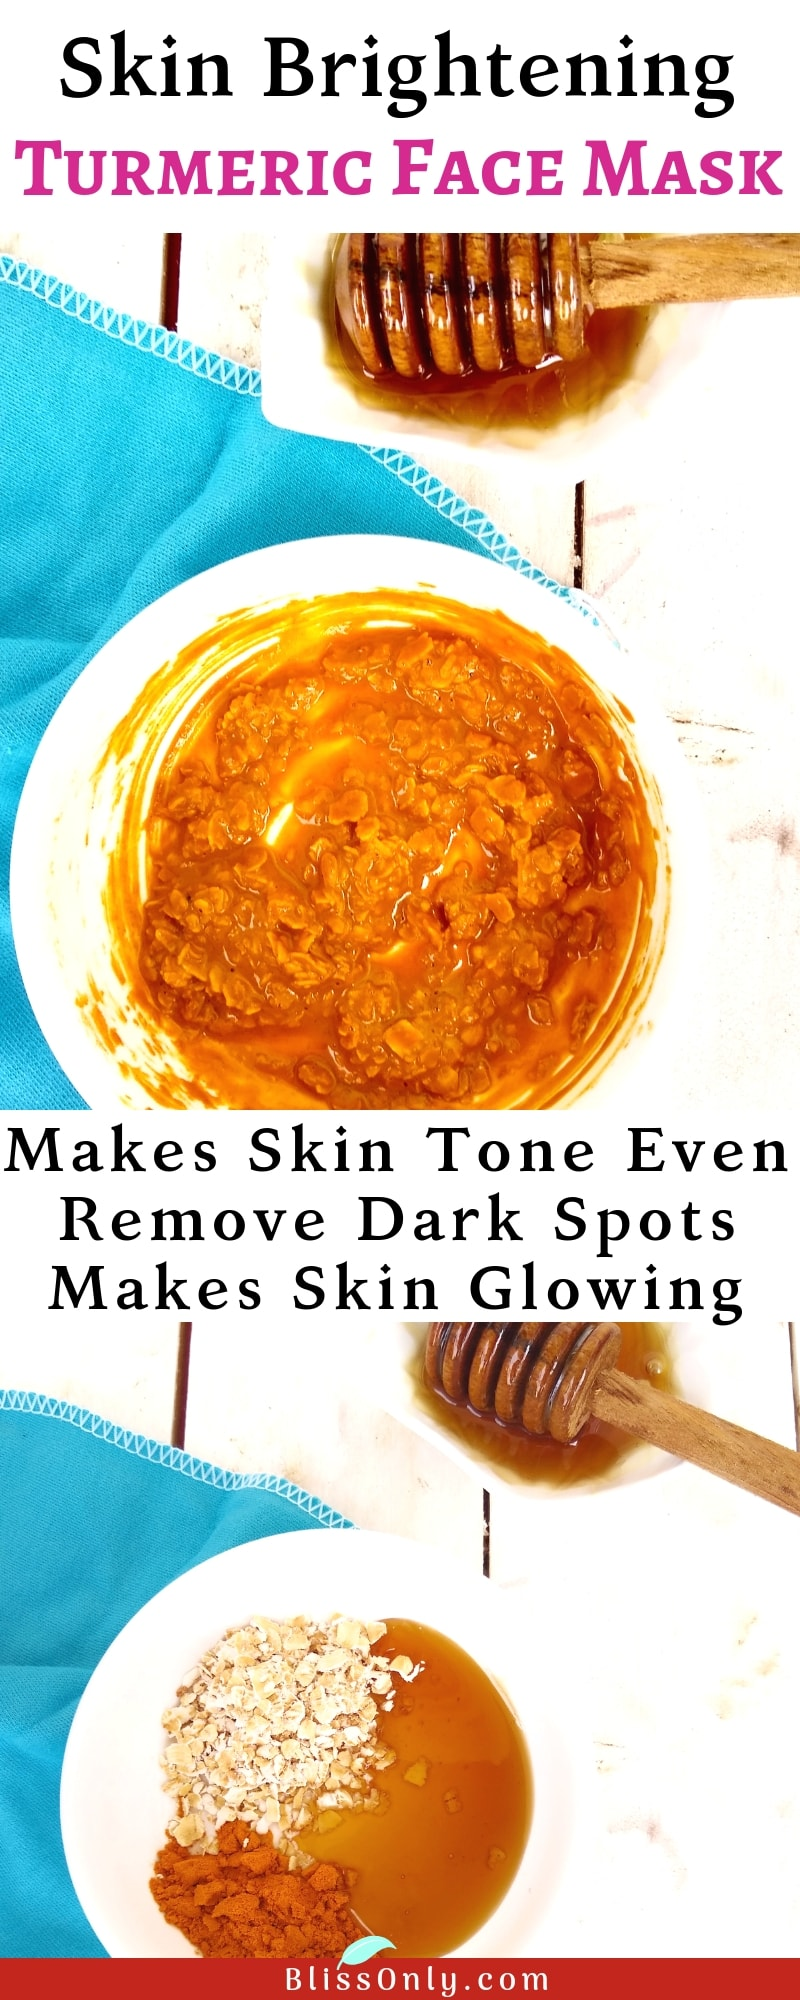 skin brightening turmeric face mask